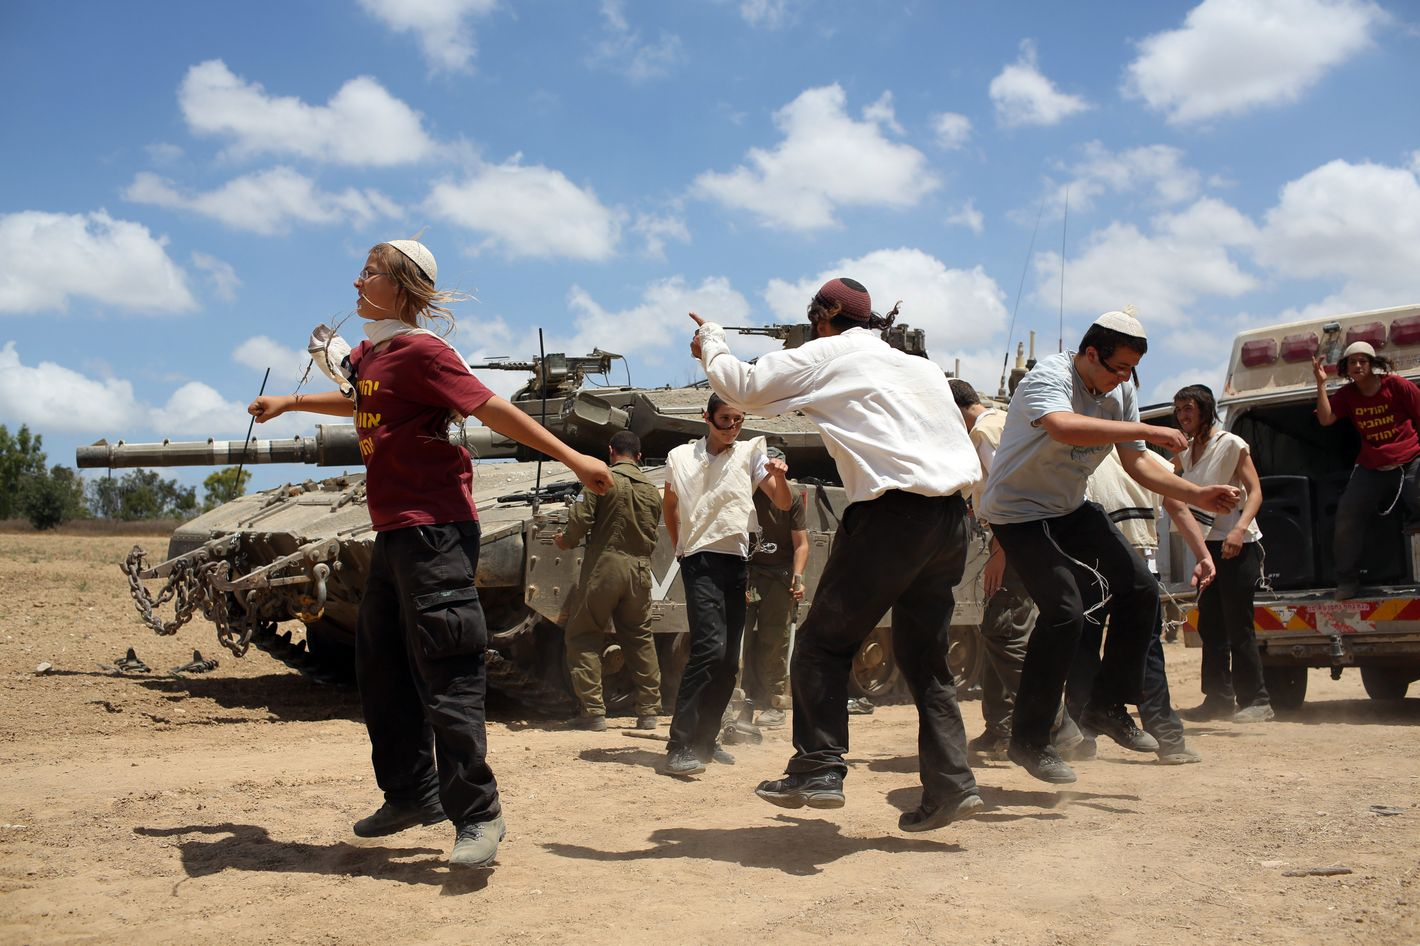 """Young Orthodox Jews dance to support the soldiers at an army deployment area near Israel's border with the Gaza Strip, on July 17, 2014. An Israeli official said the Jewish state had agreed a ceasefire with Hamas that will begin at 0300 GMT Friday, but the Islamist movement said it had """"no information"""" on a deal. AFP PHOTO /MENAHEM KAHANA        (Photo credit should read MENAHEM KAHANA/AFP/Getty Images)"""